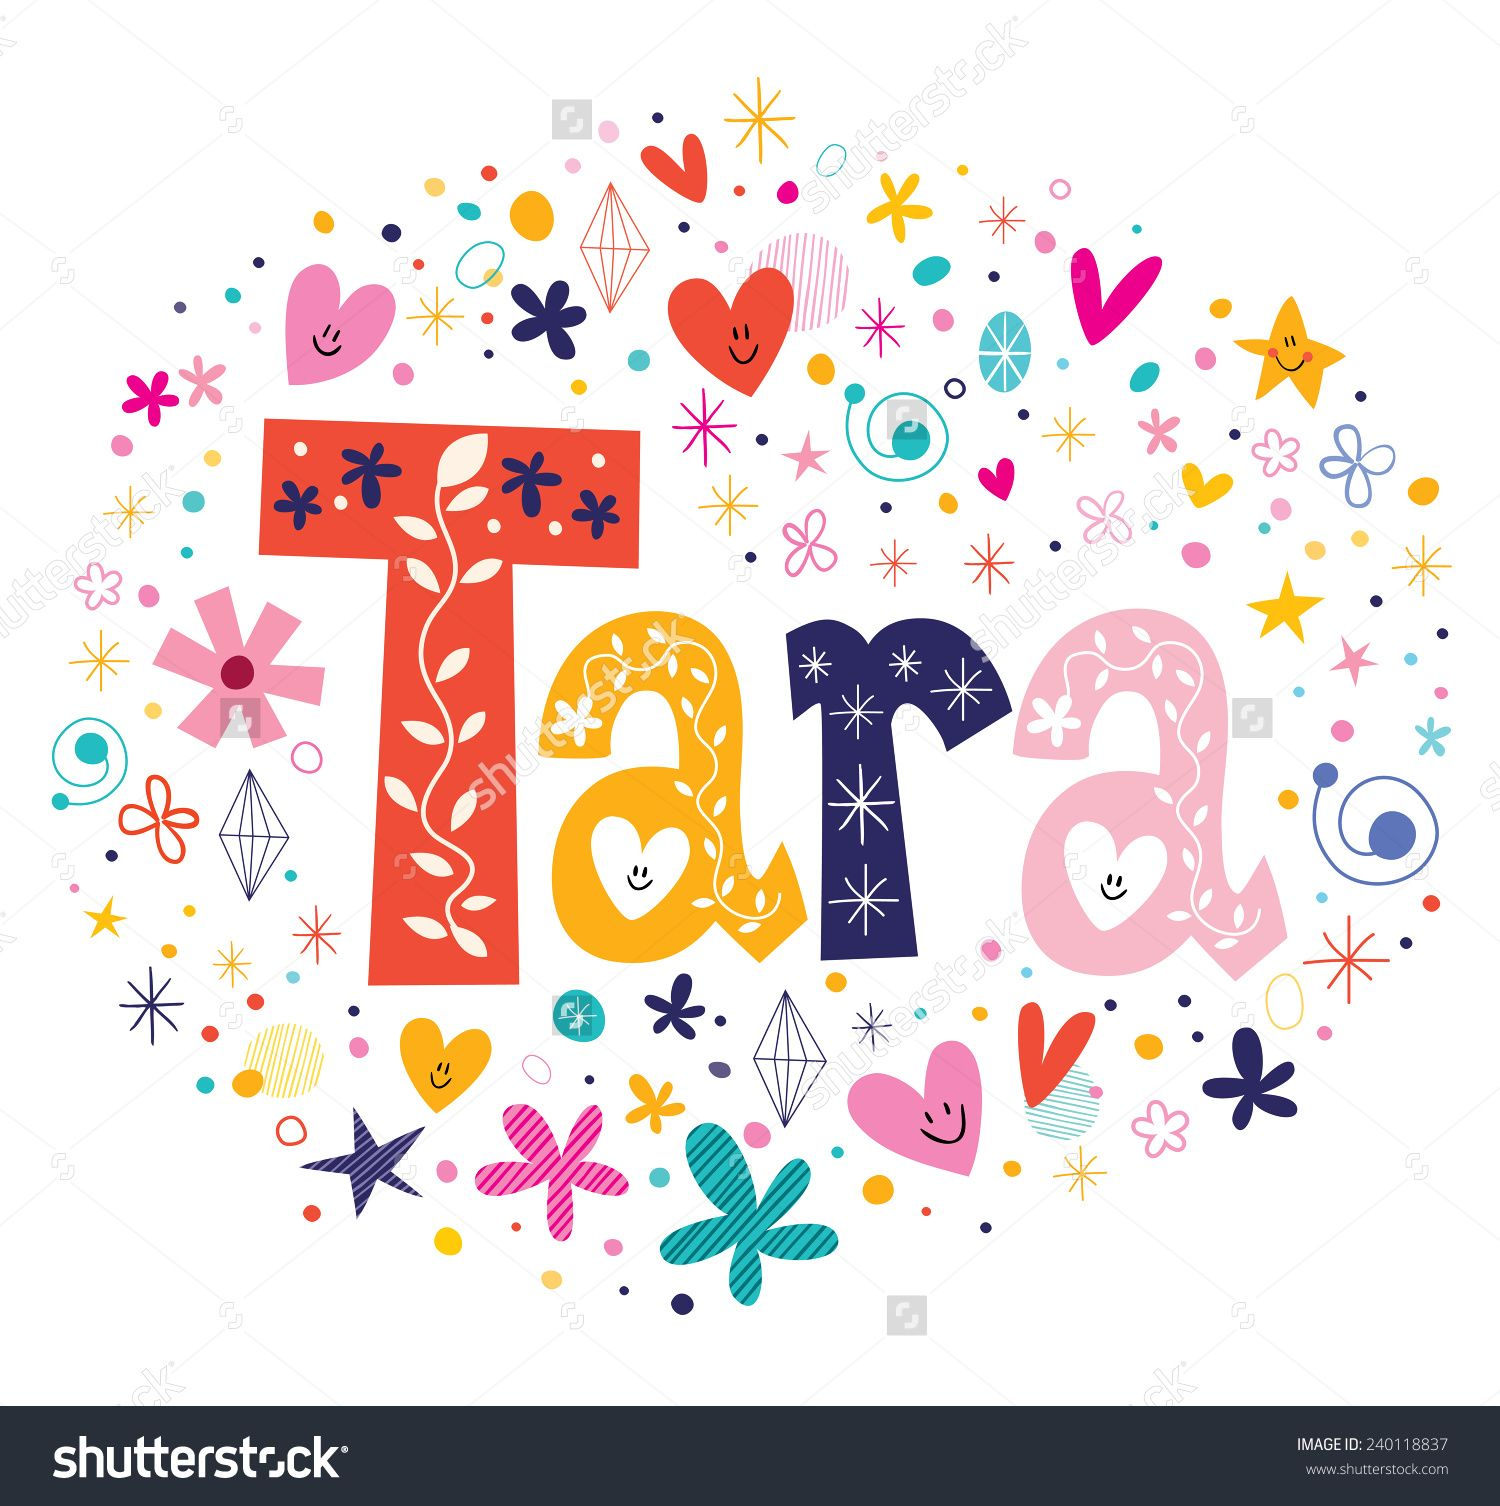 The Name Tara Stock Photos, Images, & Pictures